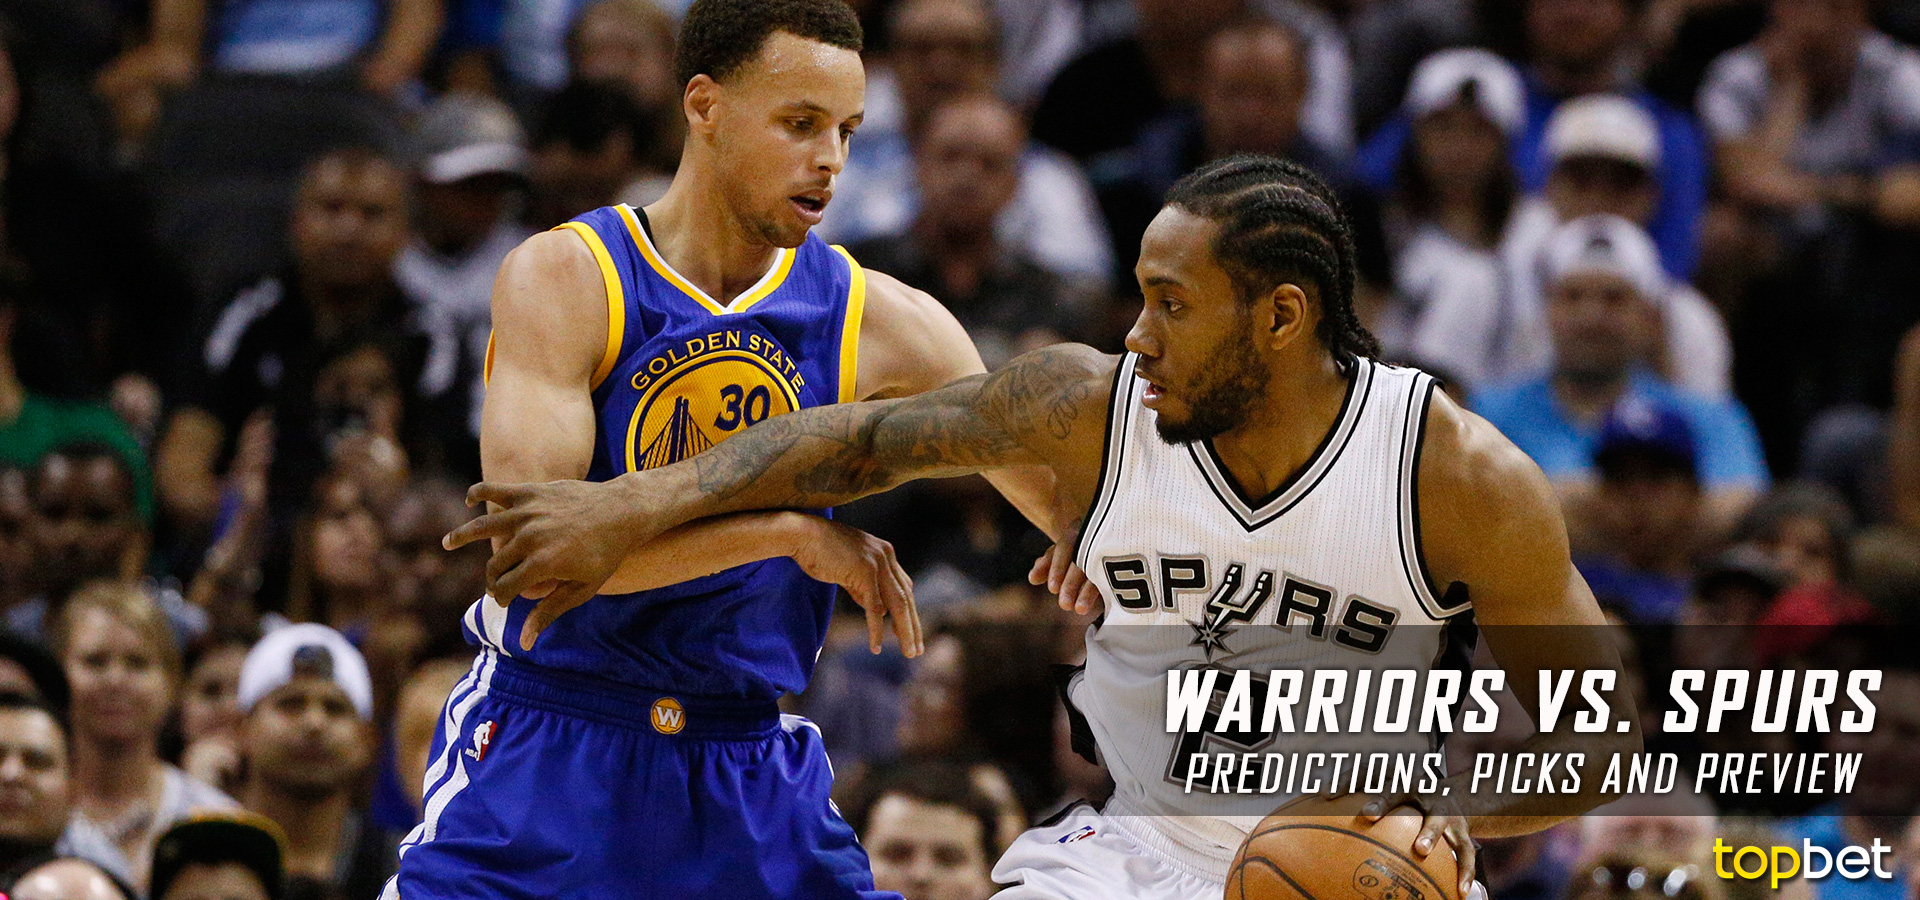 Spurs vs Warriors Series Game 1 Predictions, Picks & Preview